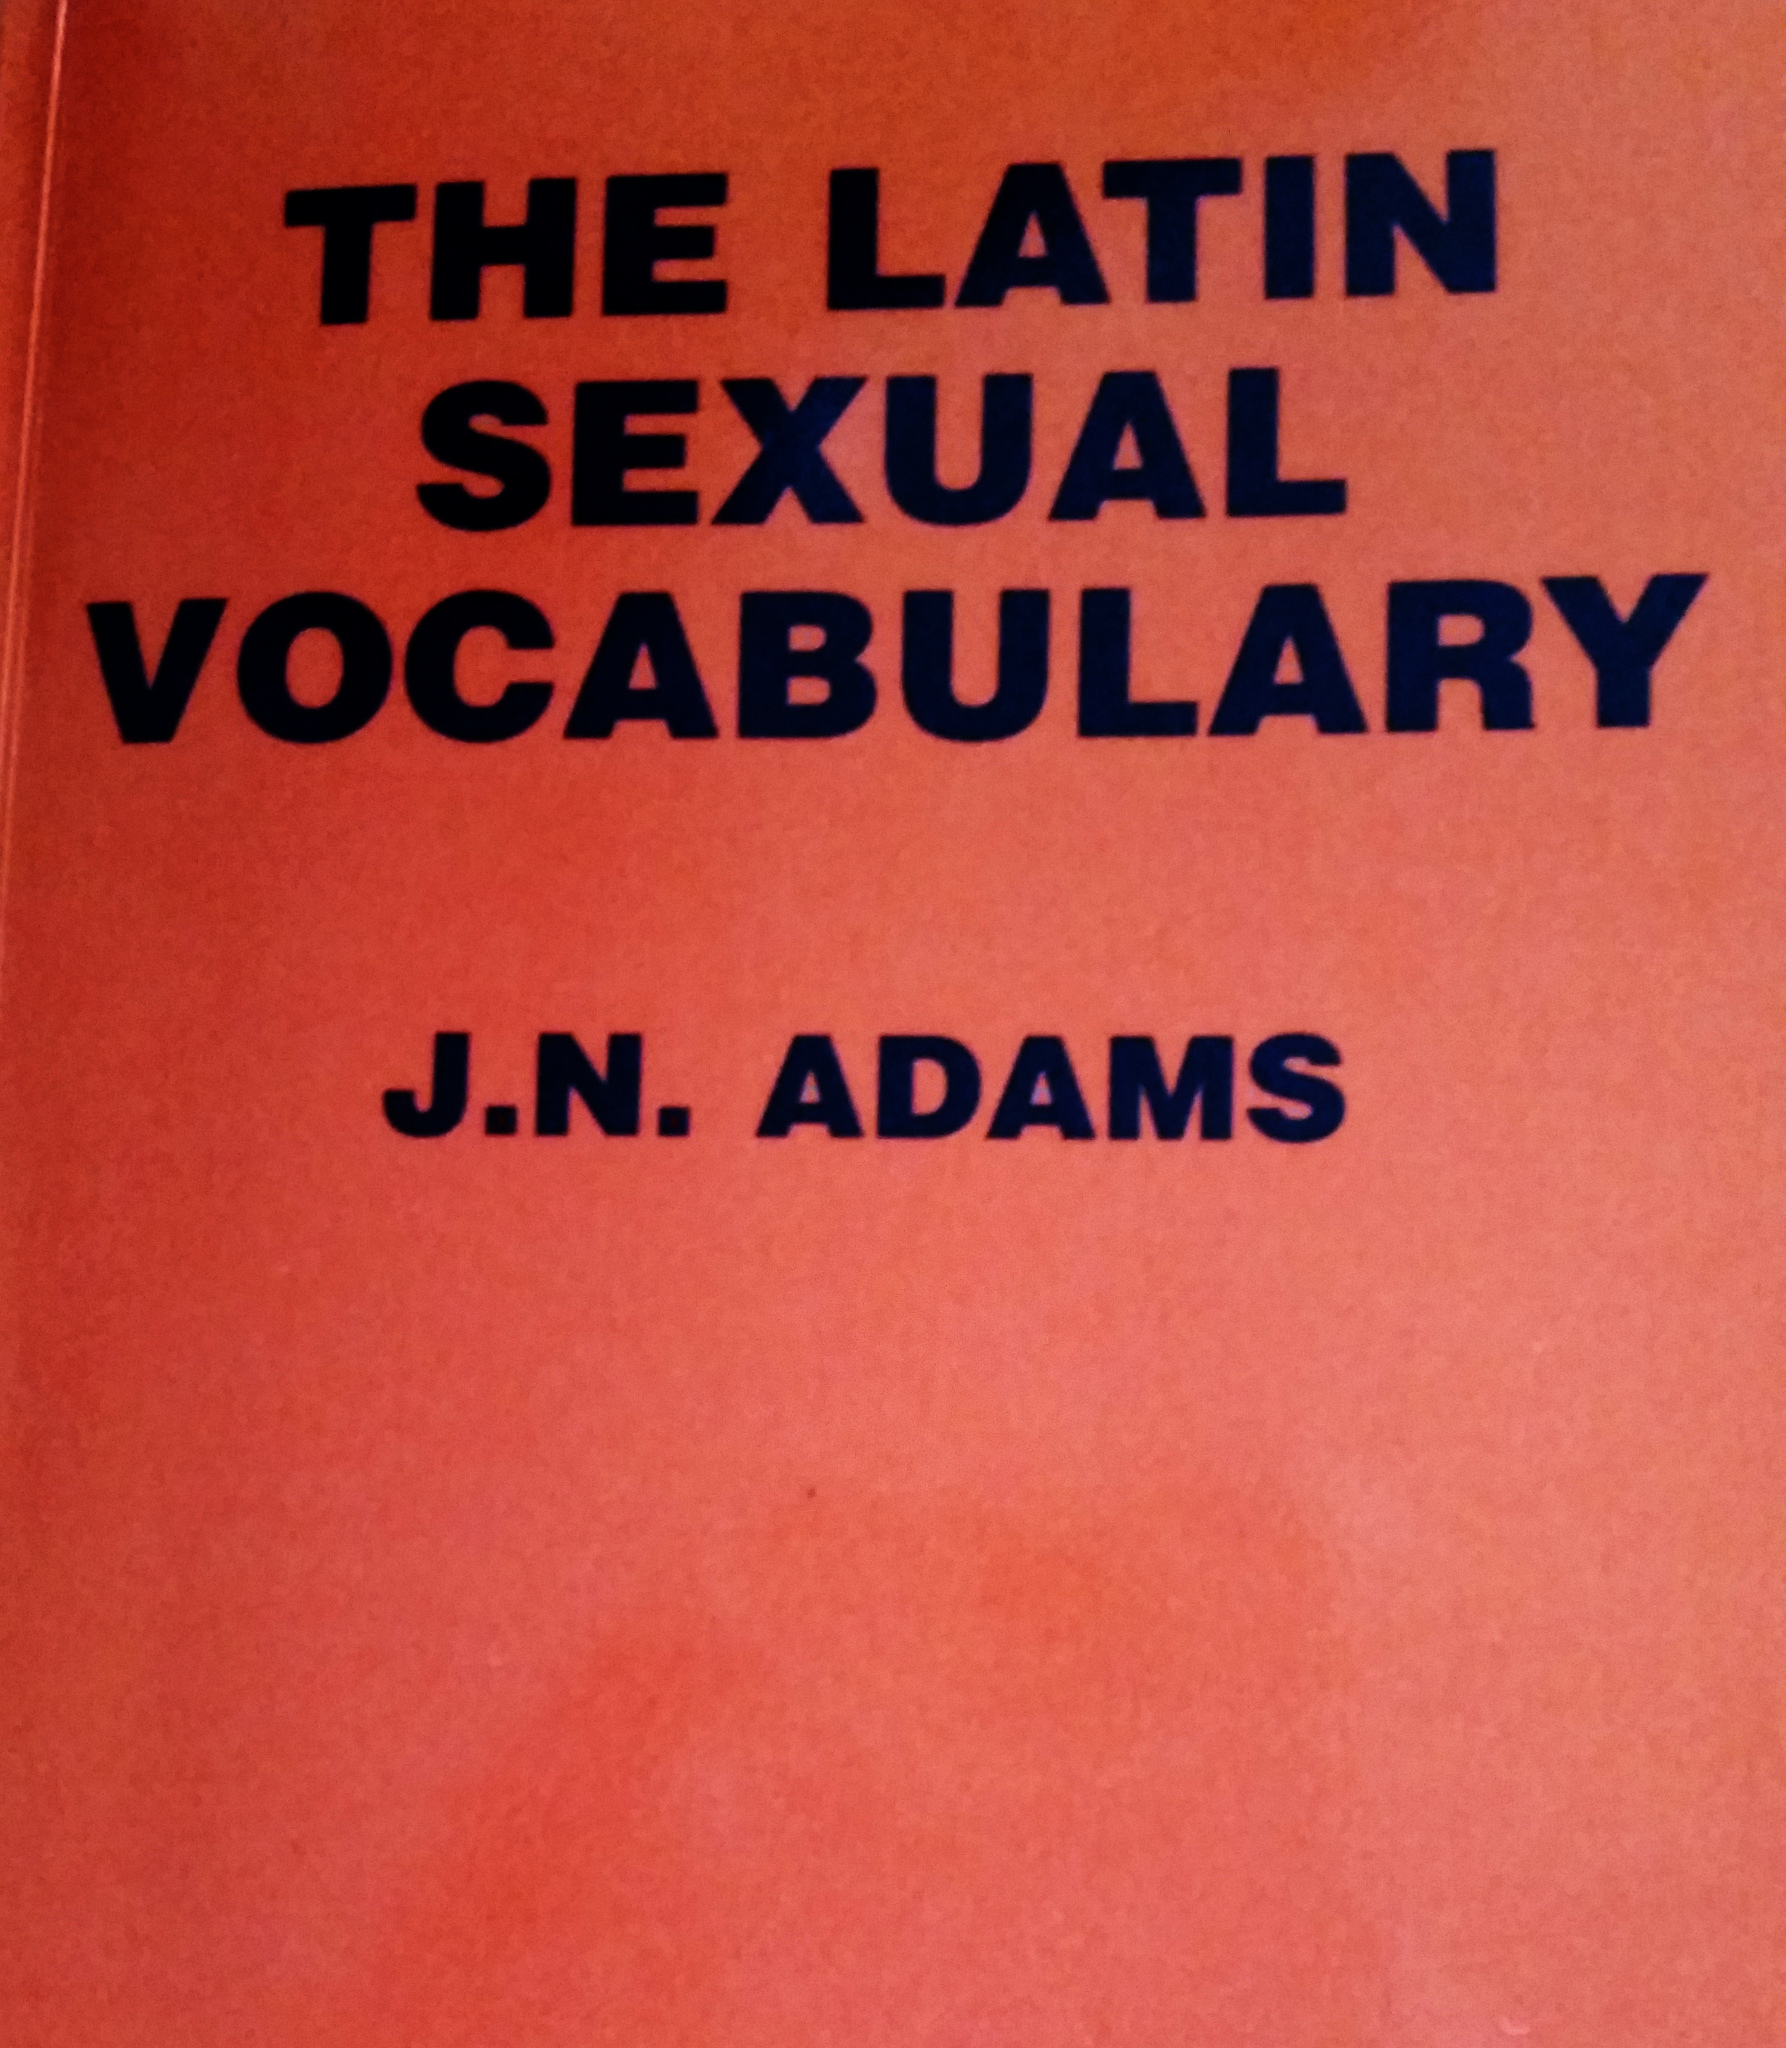 Neu in der Bibliothek: The Latin Sexual Vocabulary